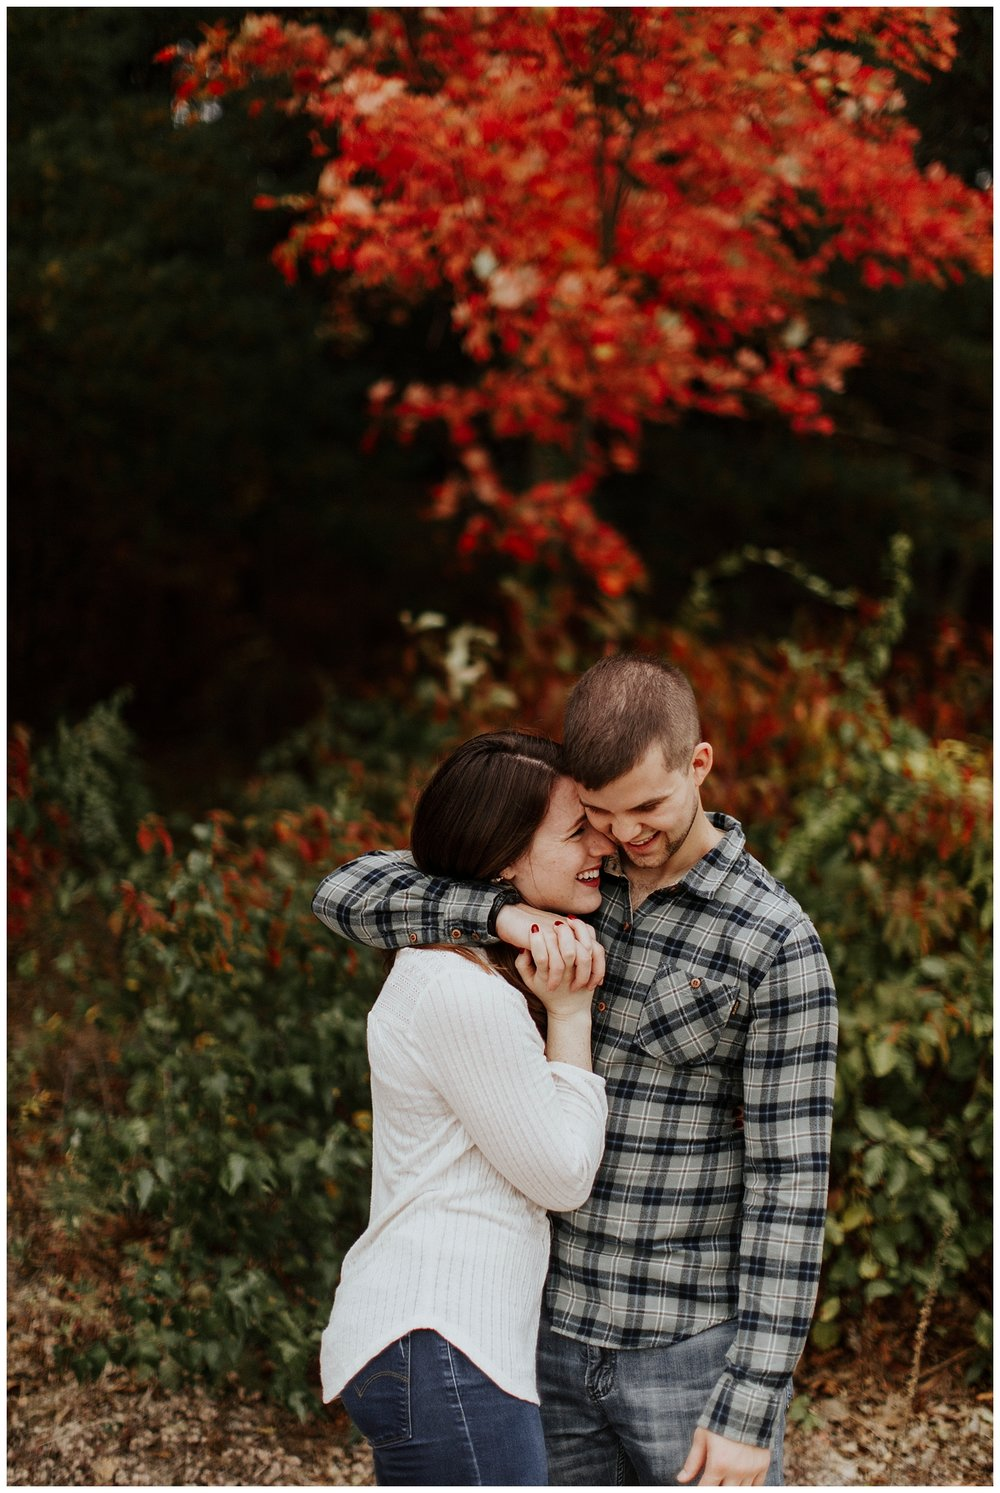 Madalynn Young Photography | Sarah Catherine + Will | Bridge Street Gallery and Loft | Atlanta Wedding Photographer_0596.jpg